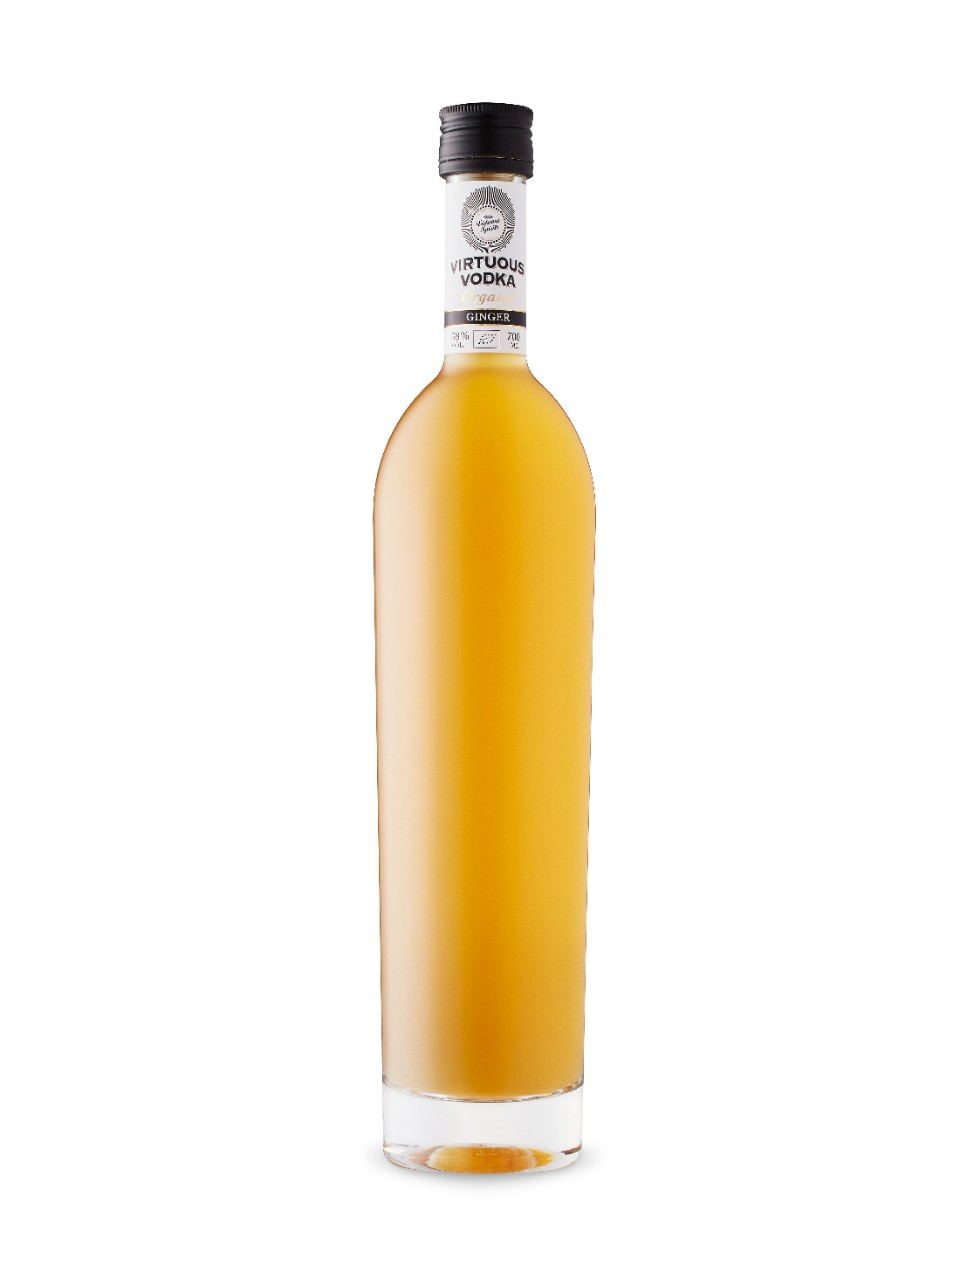 Virtuous Vodka Organic Ginger from LCBO